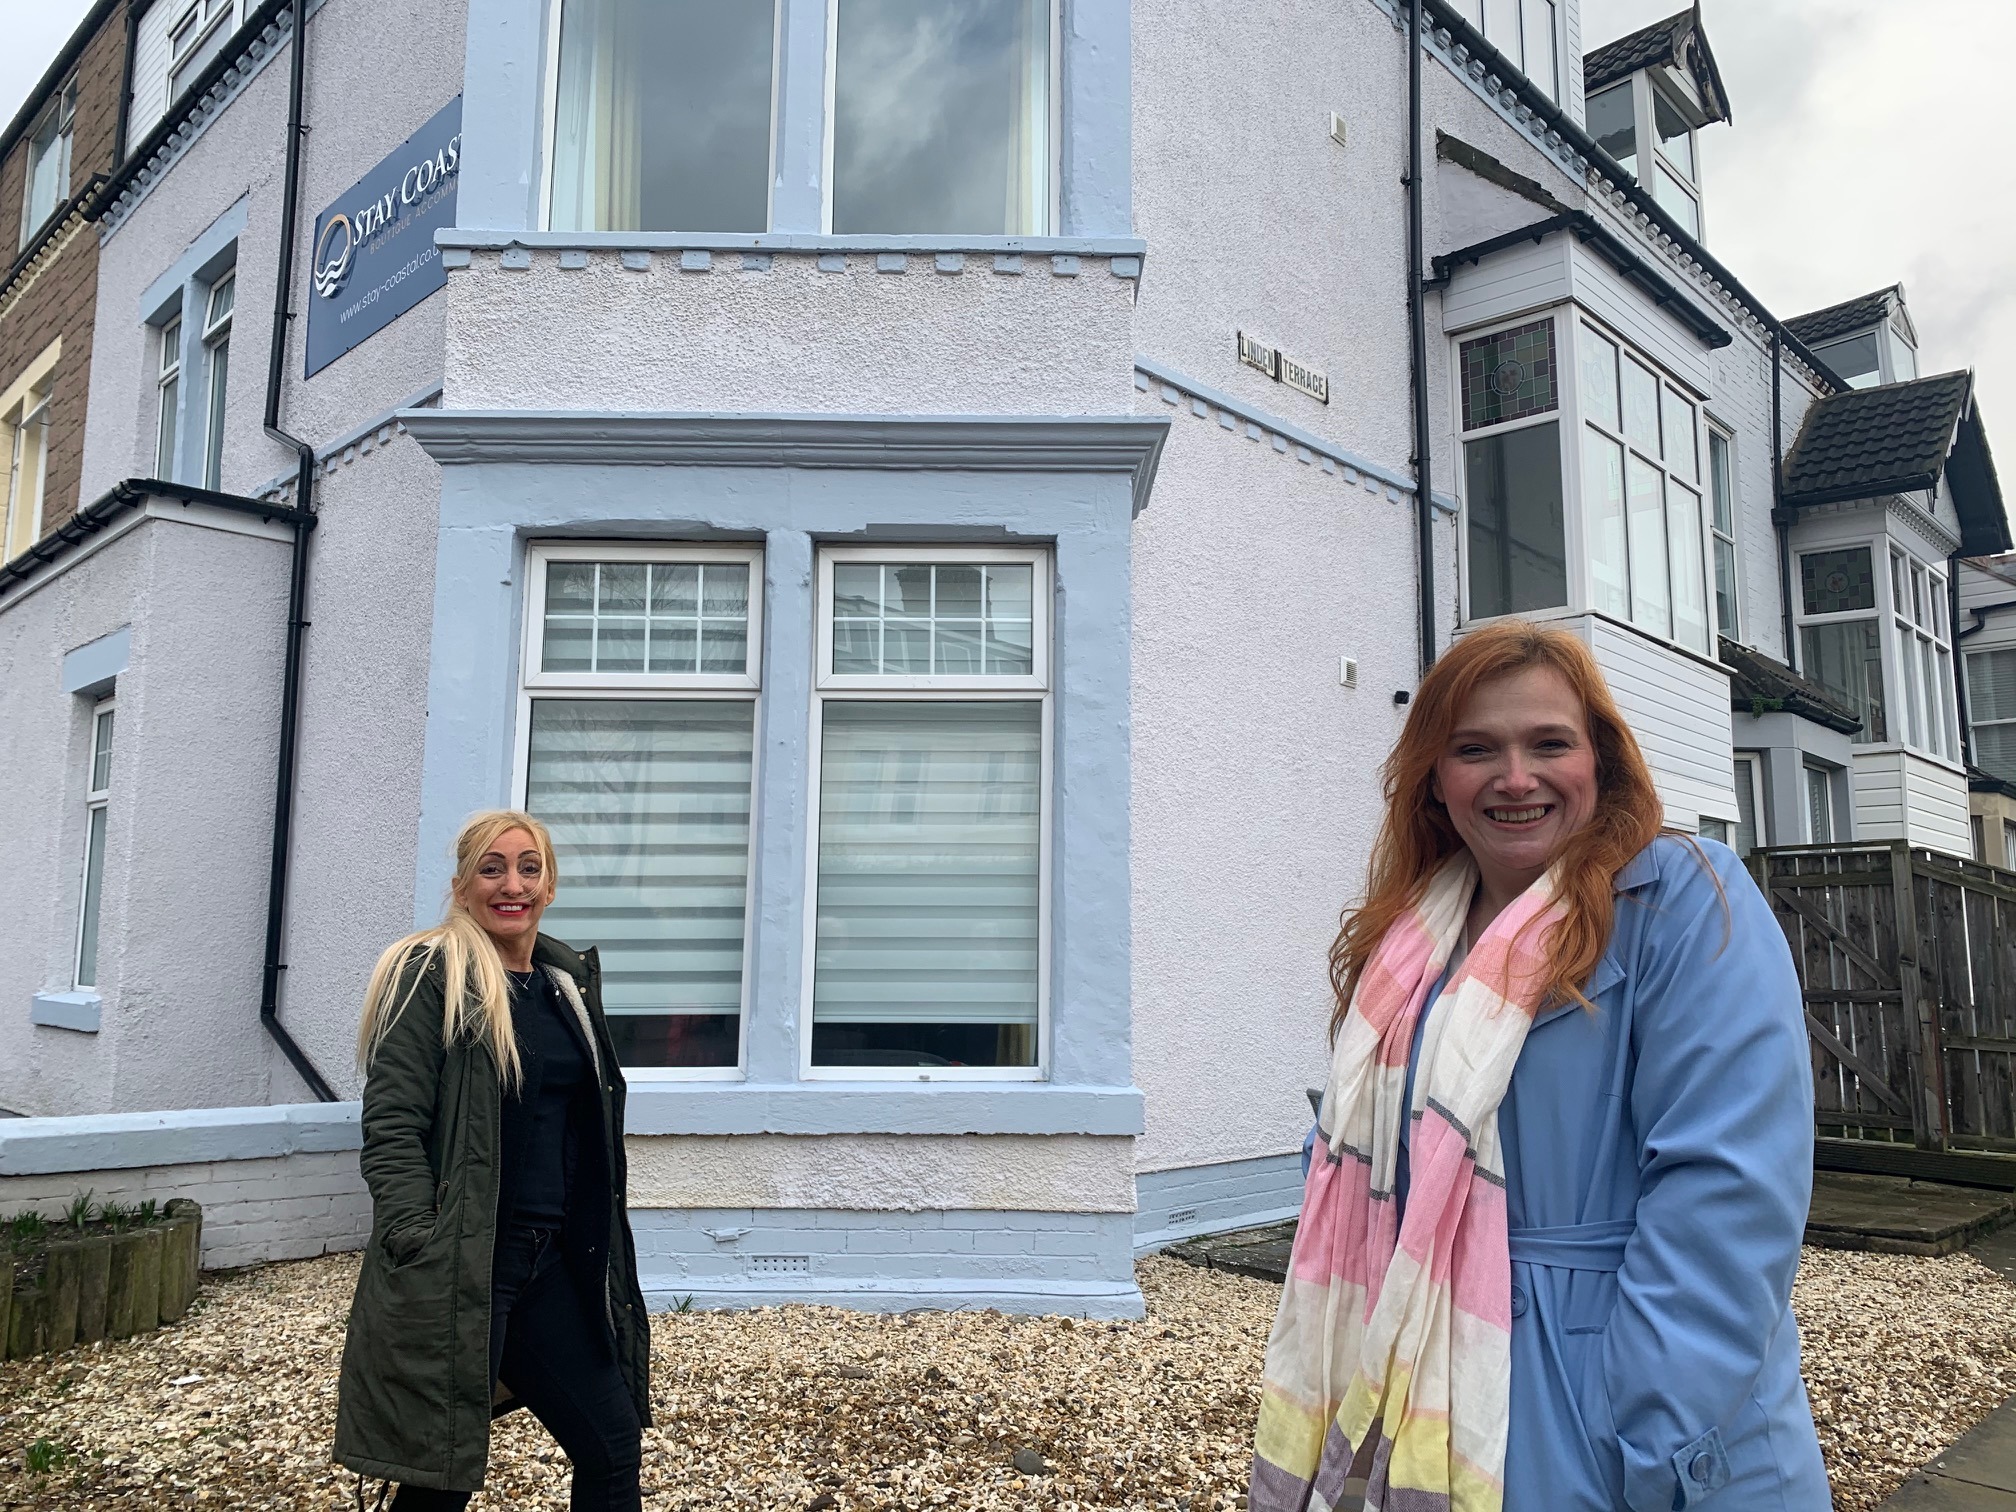 Whitley Bay Boutique Hotel Accommodates NHS Frontline Workers Unable To Return Home